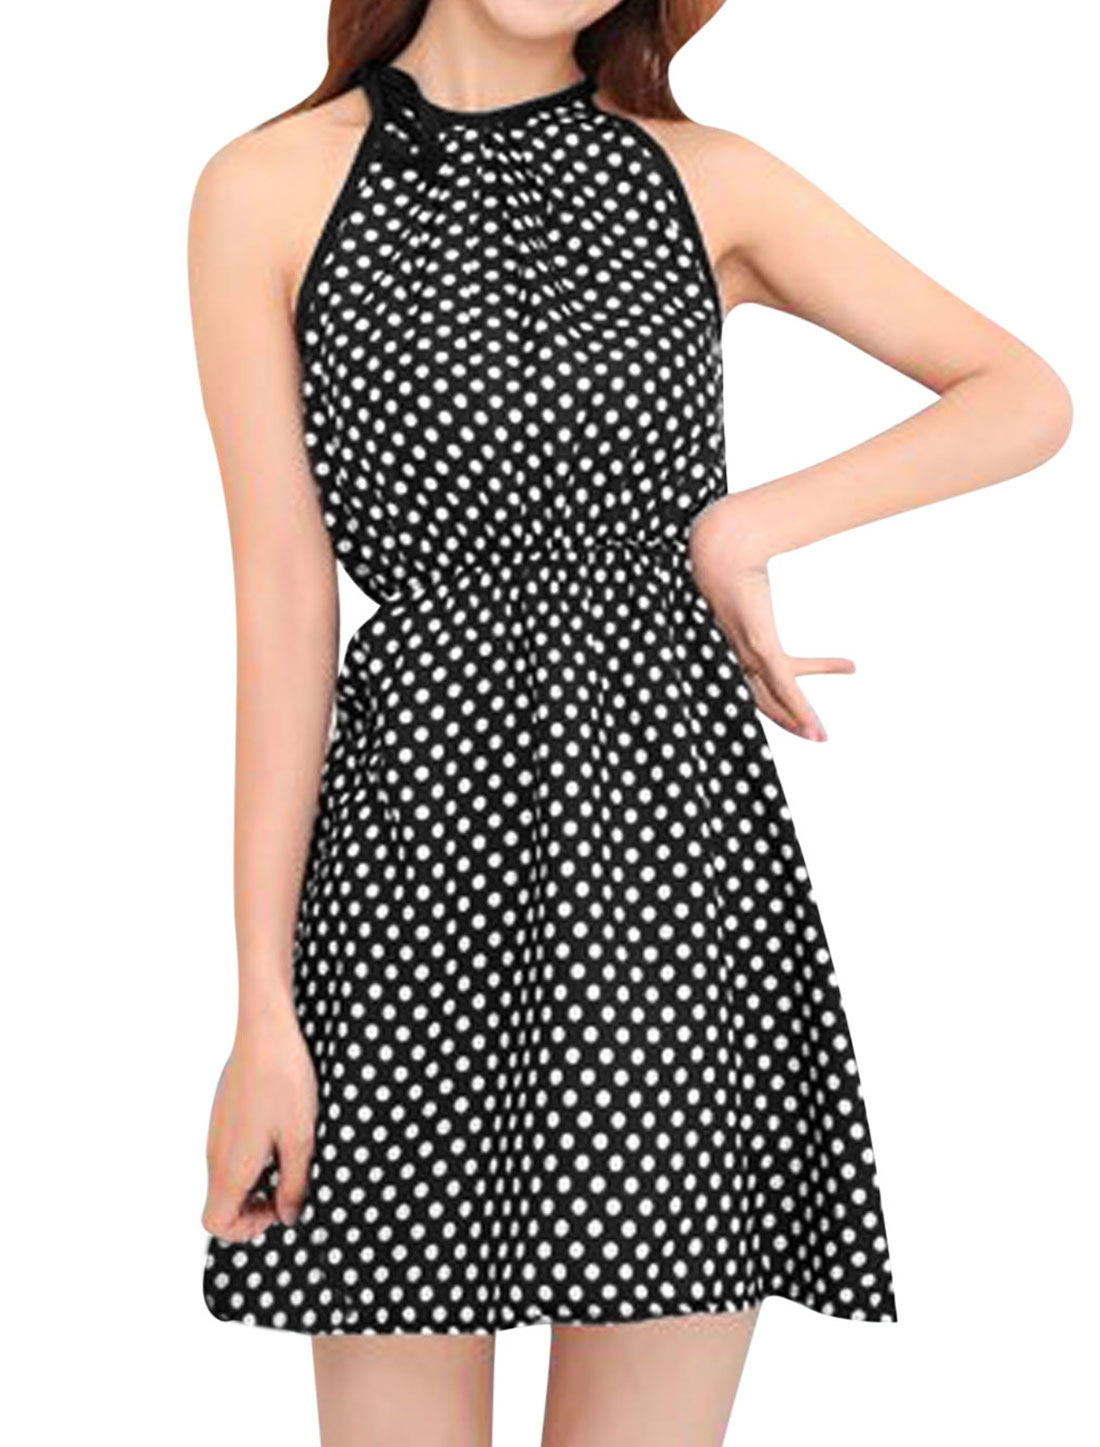 Lady Dots Prints Self Tie Detail Cut Out Back Casual Sundress Black White XS